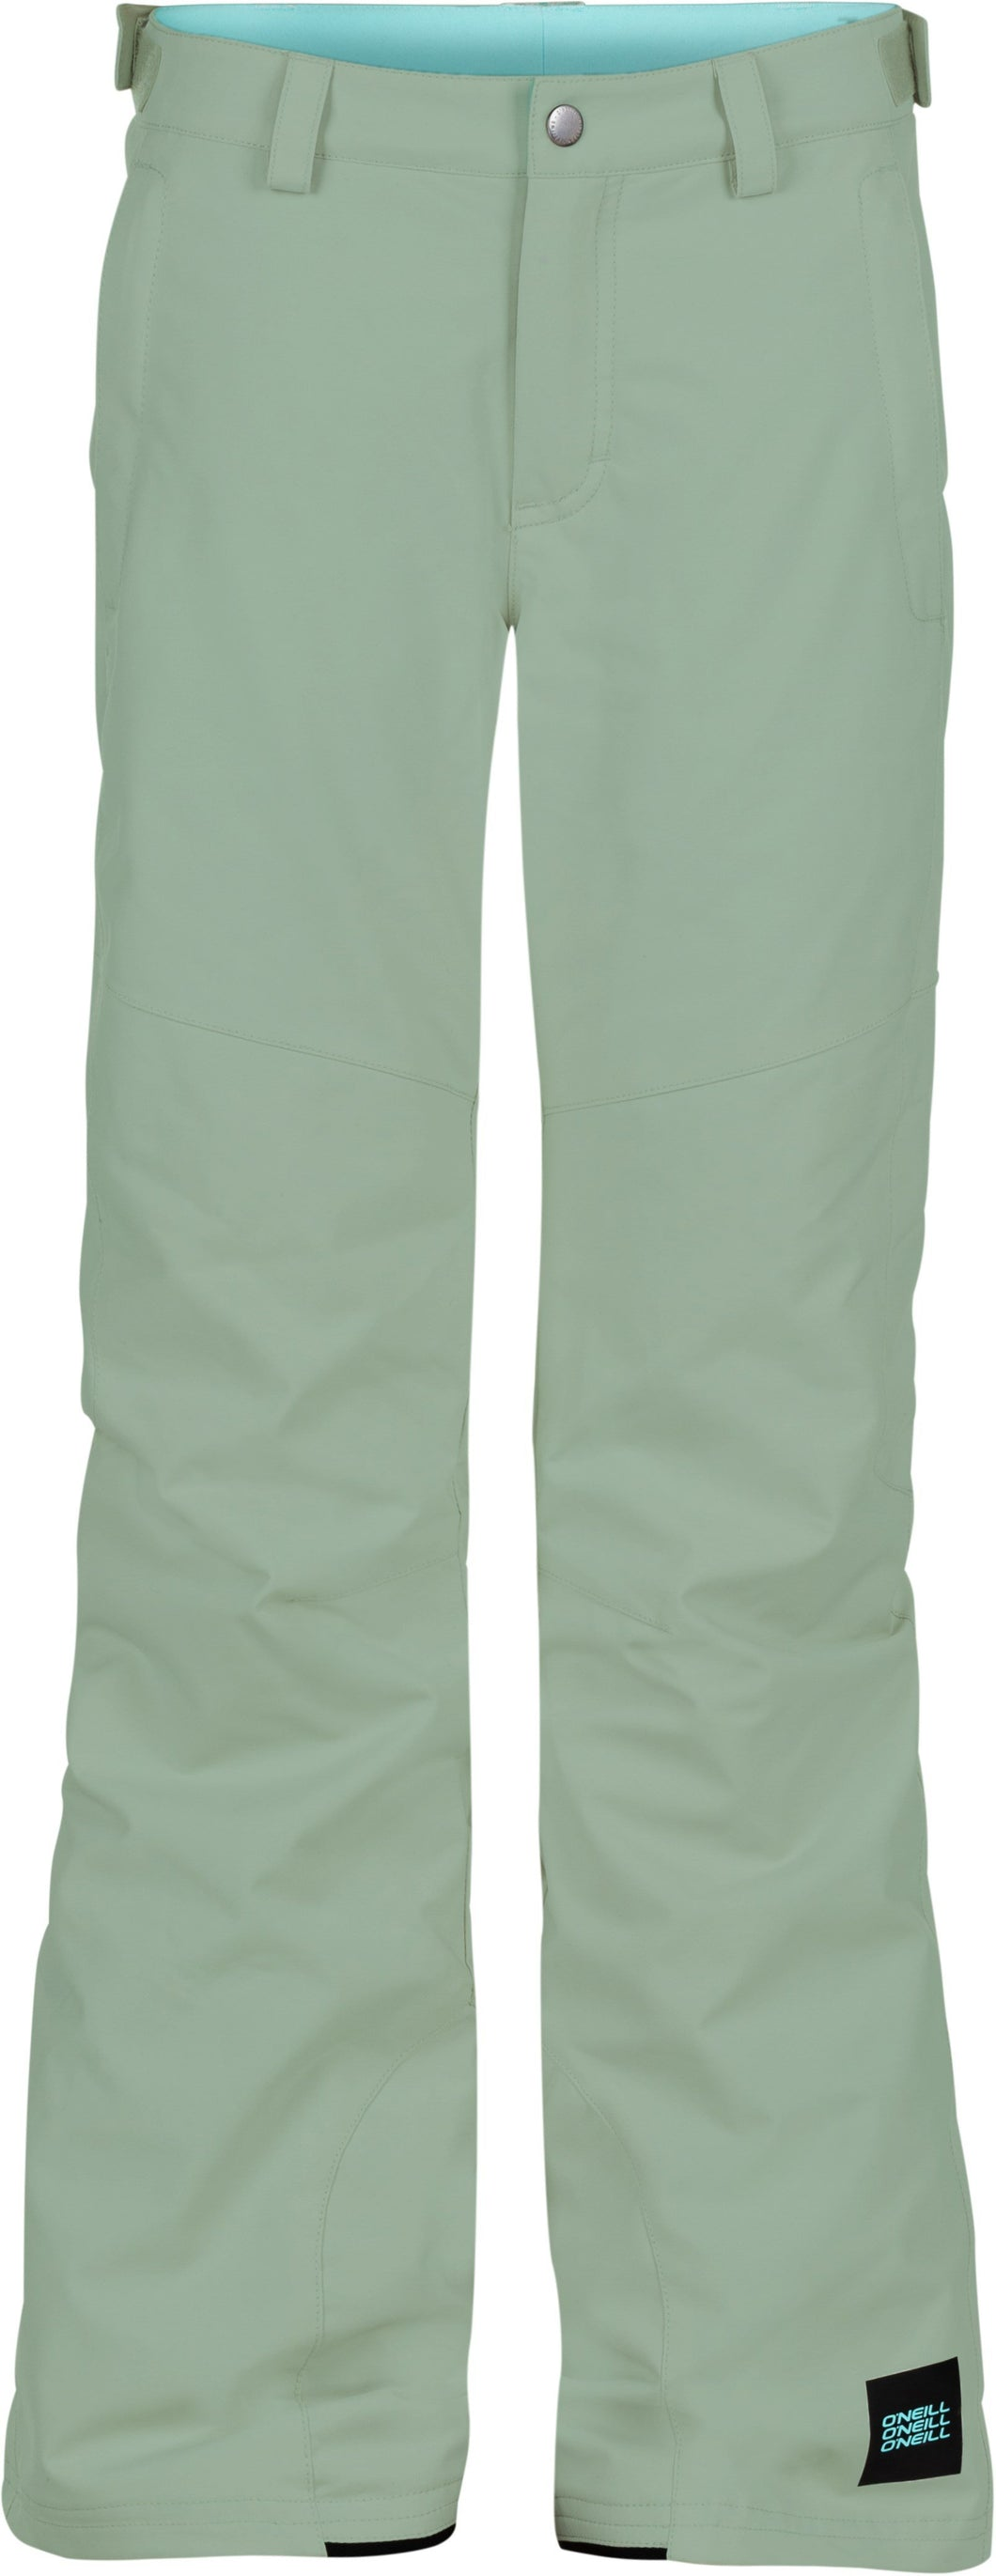 O'Neill Girl's Charm Regular Ski and Snowboard Green Pant Front